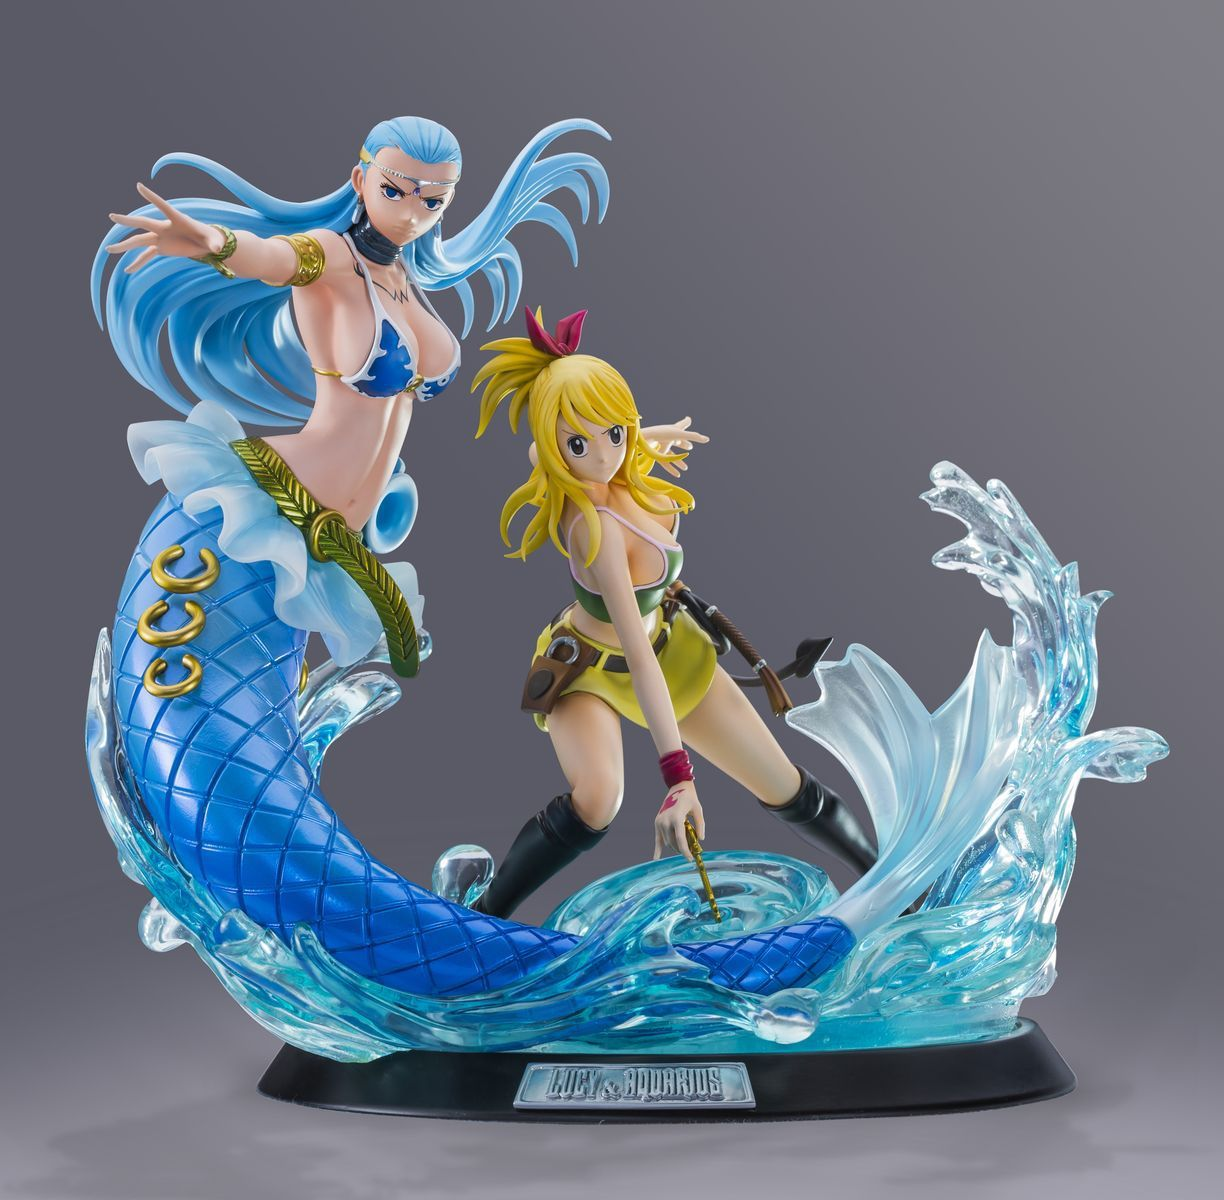 Фигурка Fairy Tail: Lucy Heartfilia & Aquarius